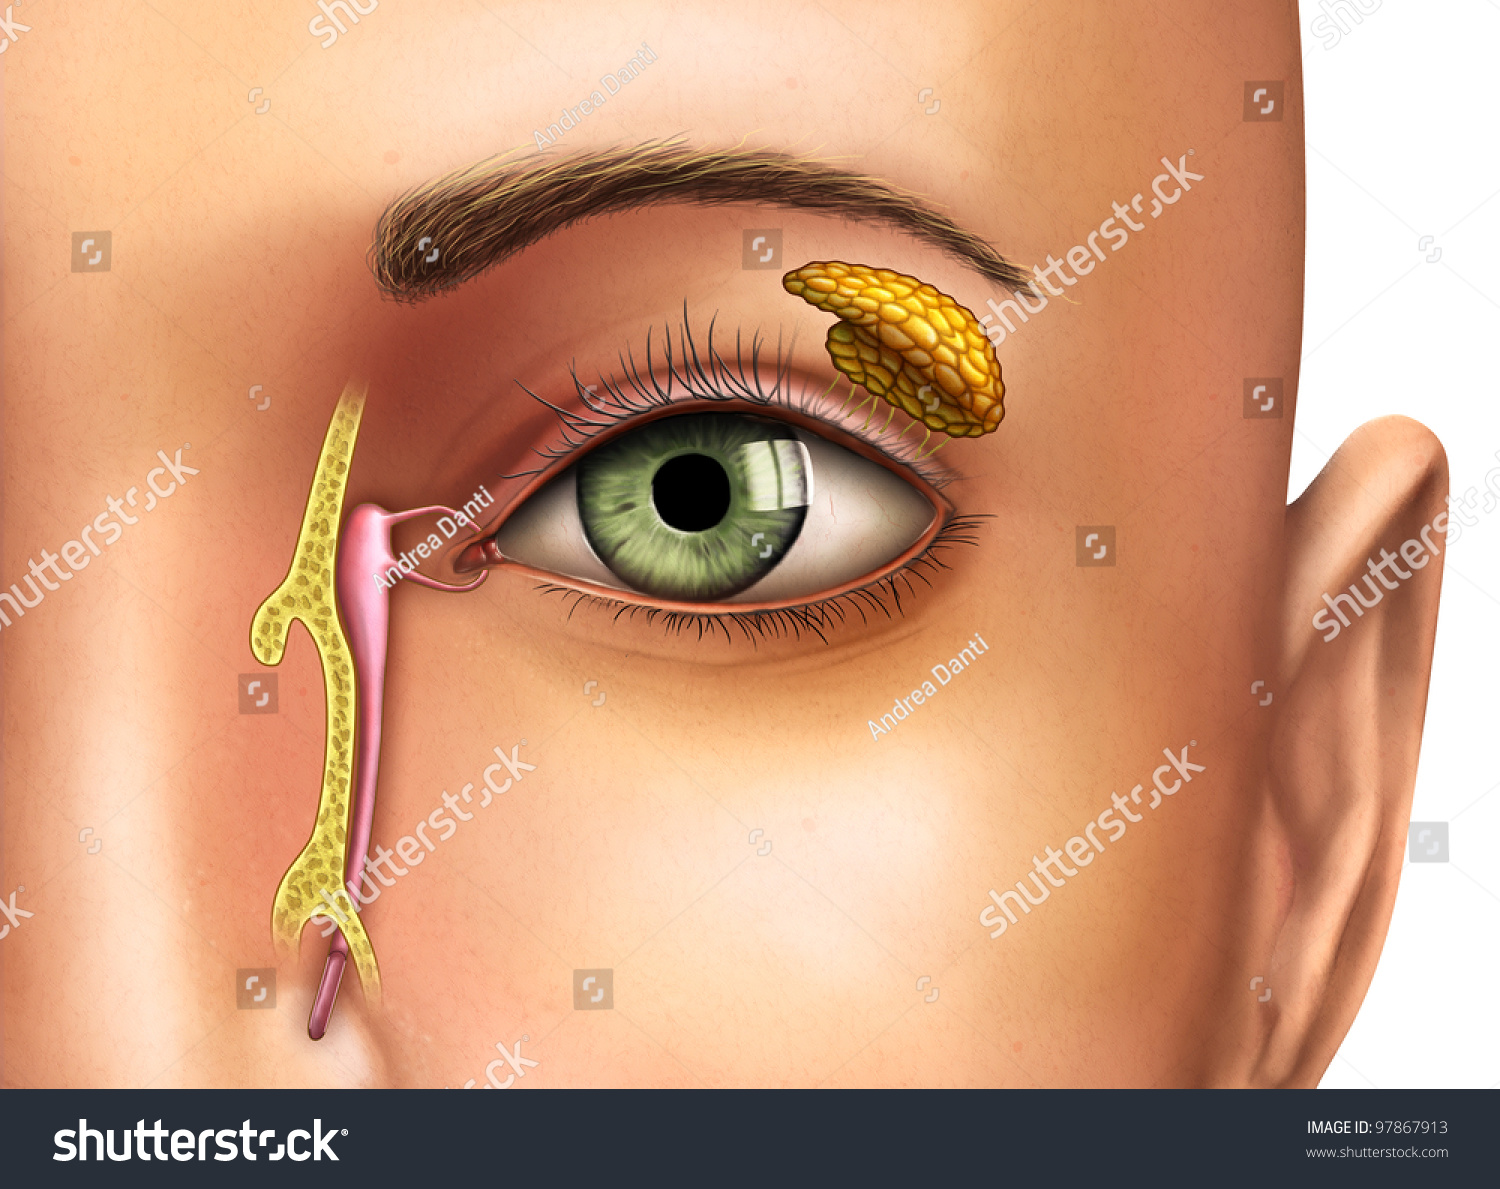 Anatomy Drawing Showing Functioning Lacrimal Glands Stock